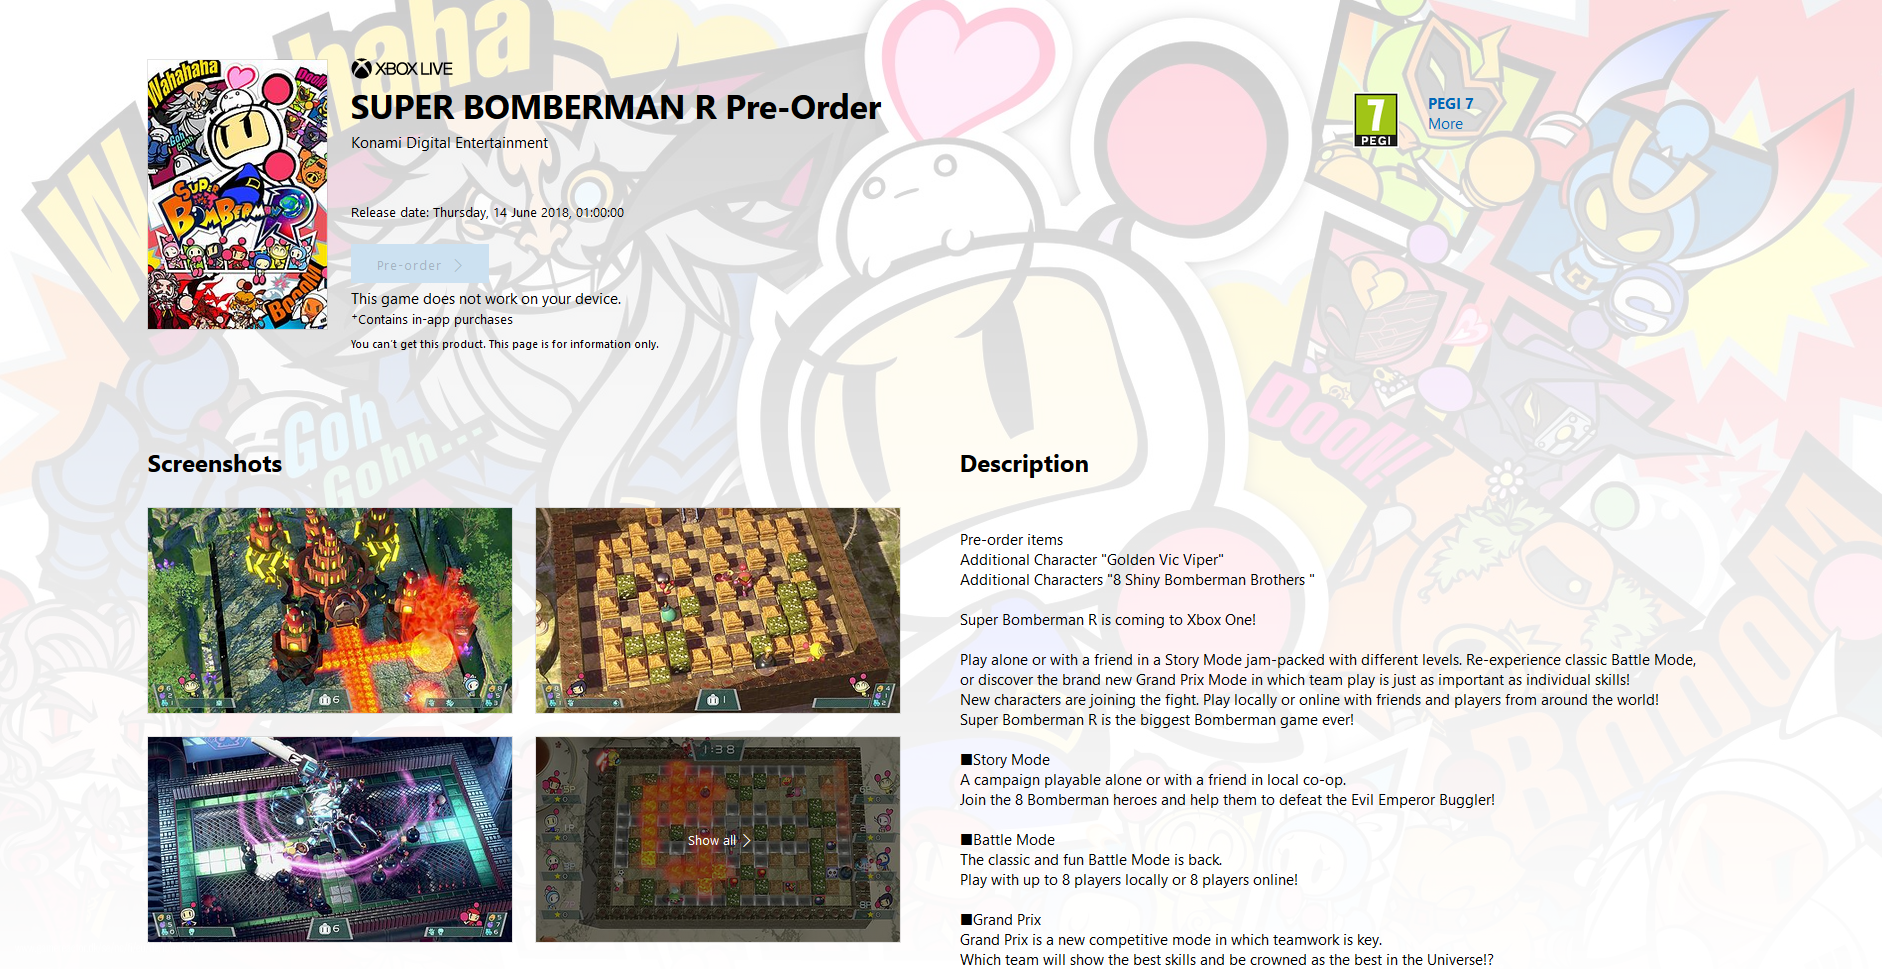 Super Bomberman R Reg 1 Dc5n United States Software In English Created At 2018 03 15 1222 11